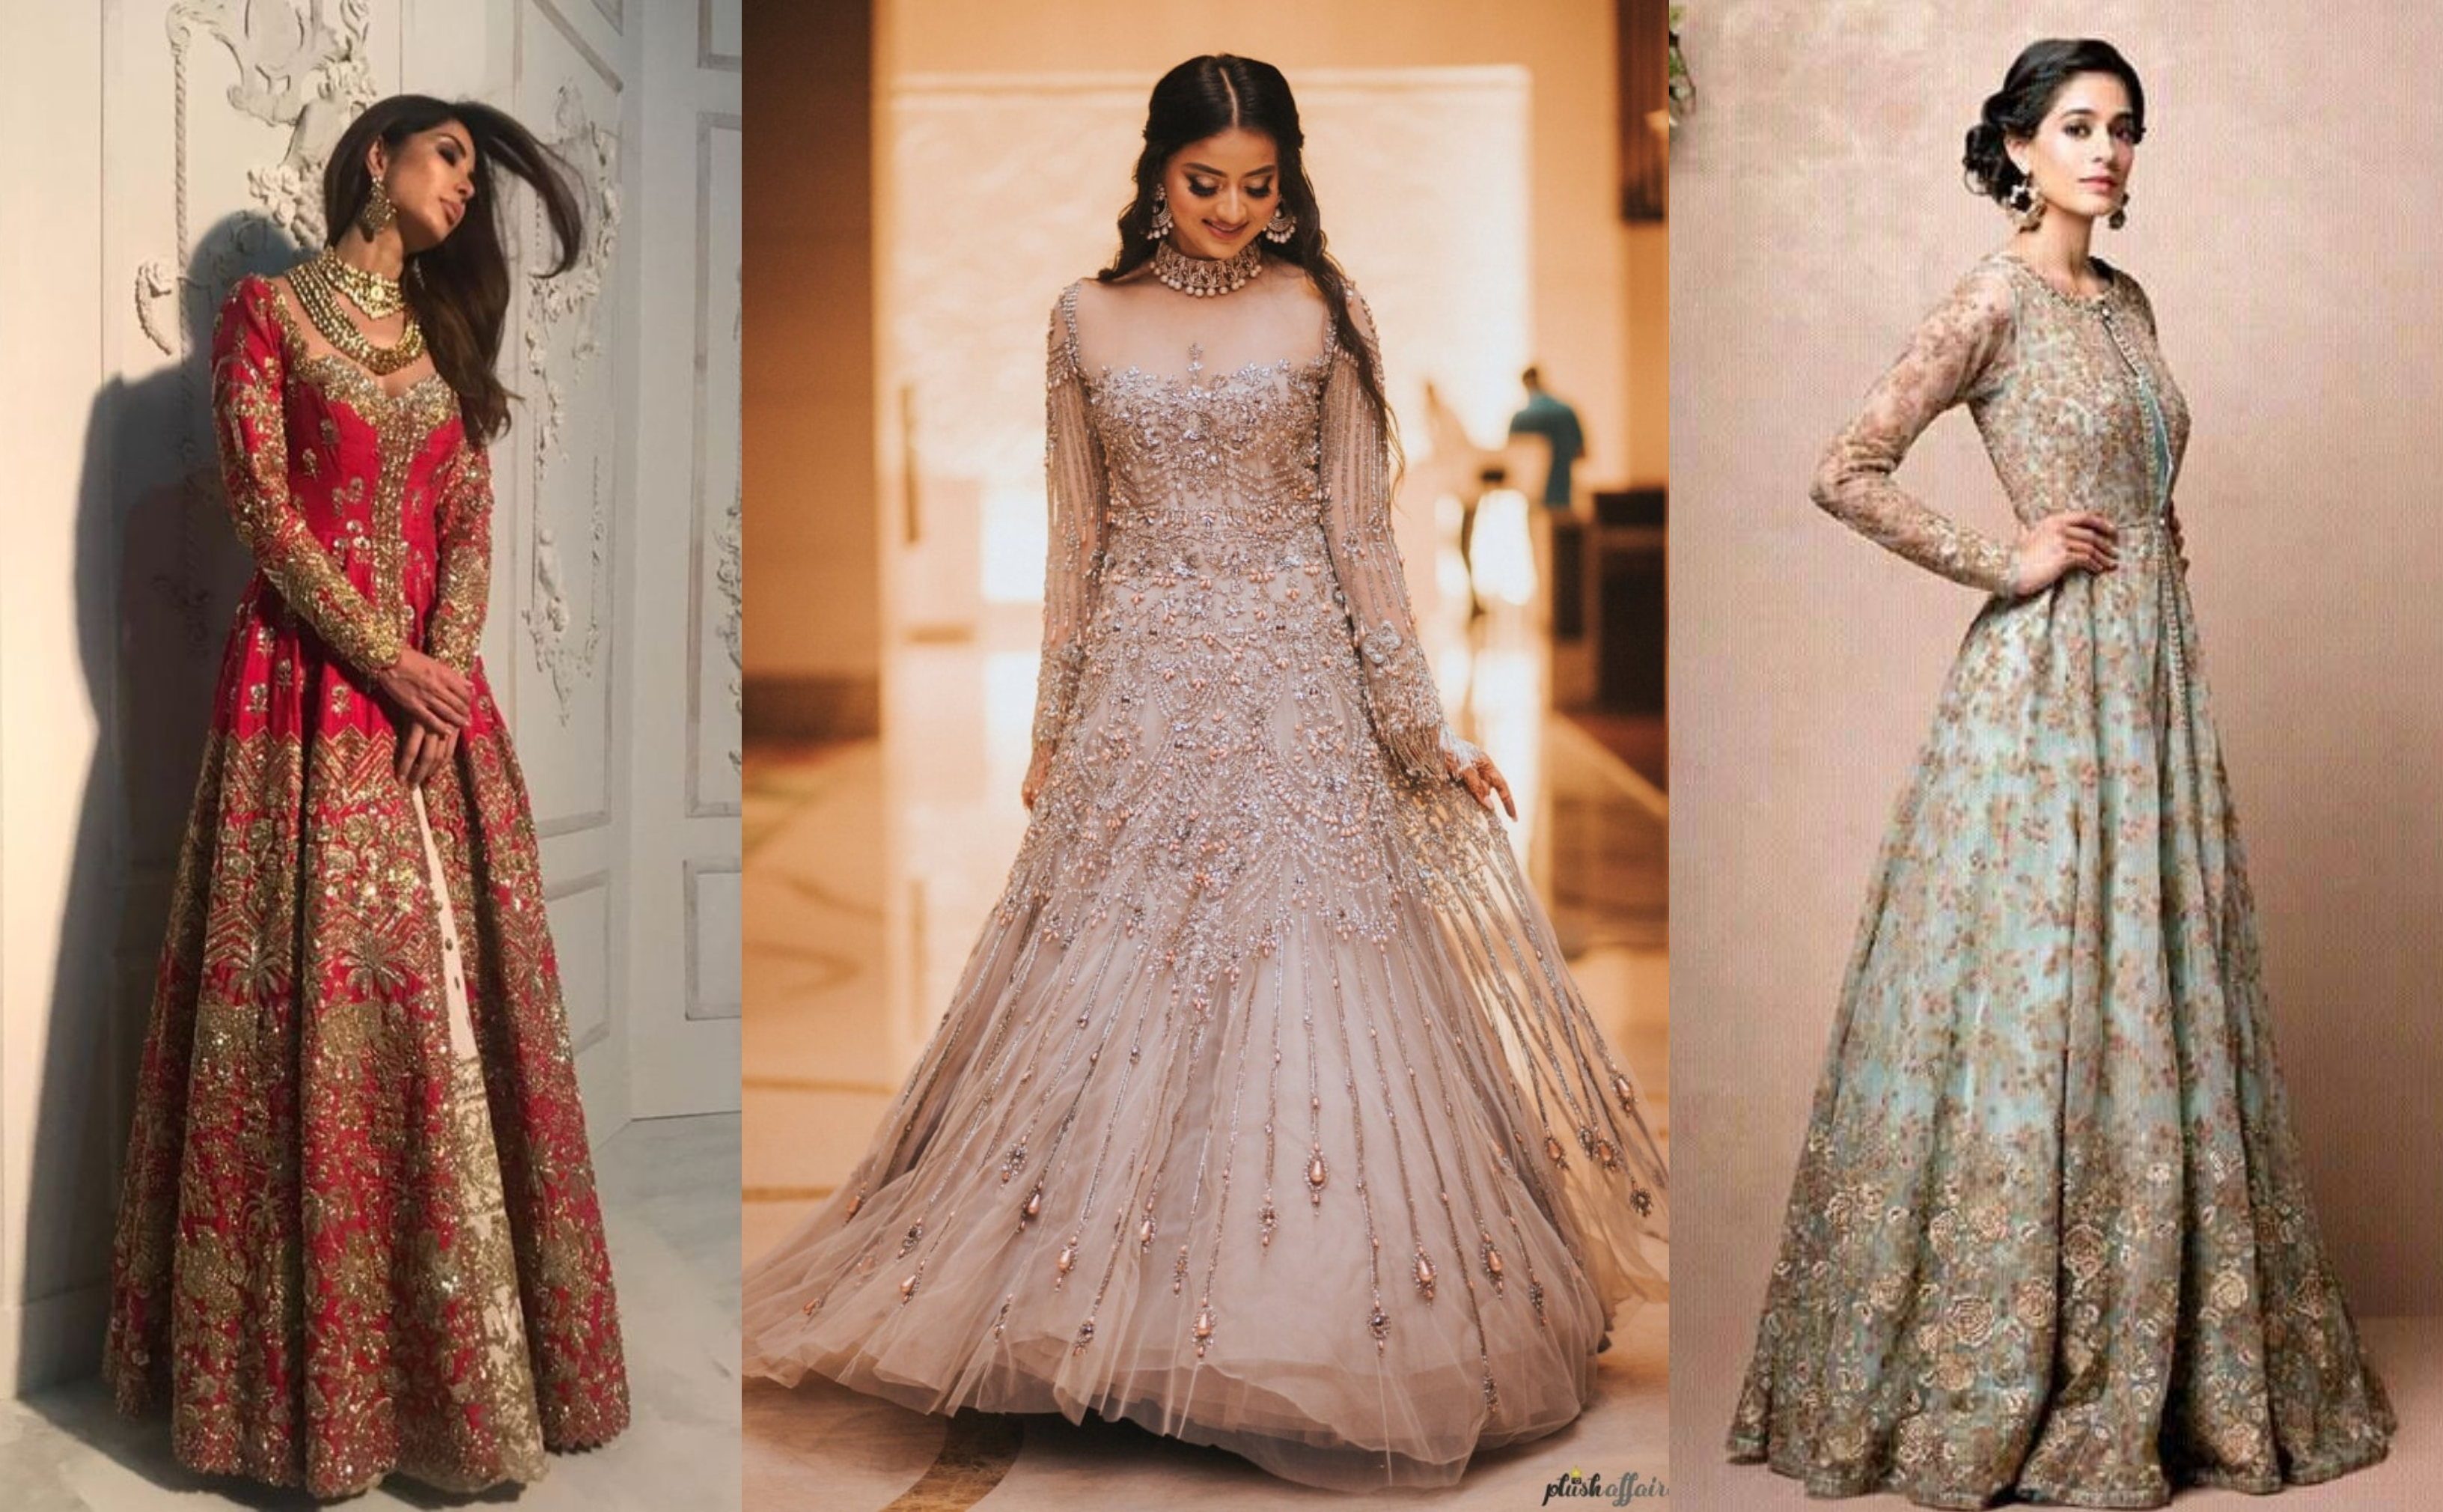 Top 8+ Wedding Gowns for Brides-To-Be That Are Worth Bookmarking